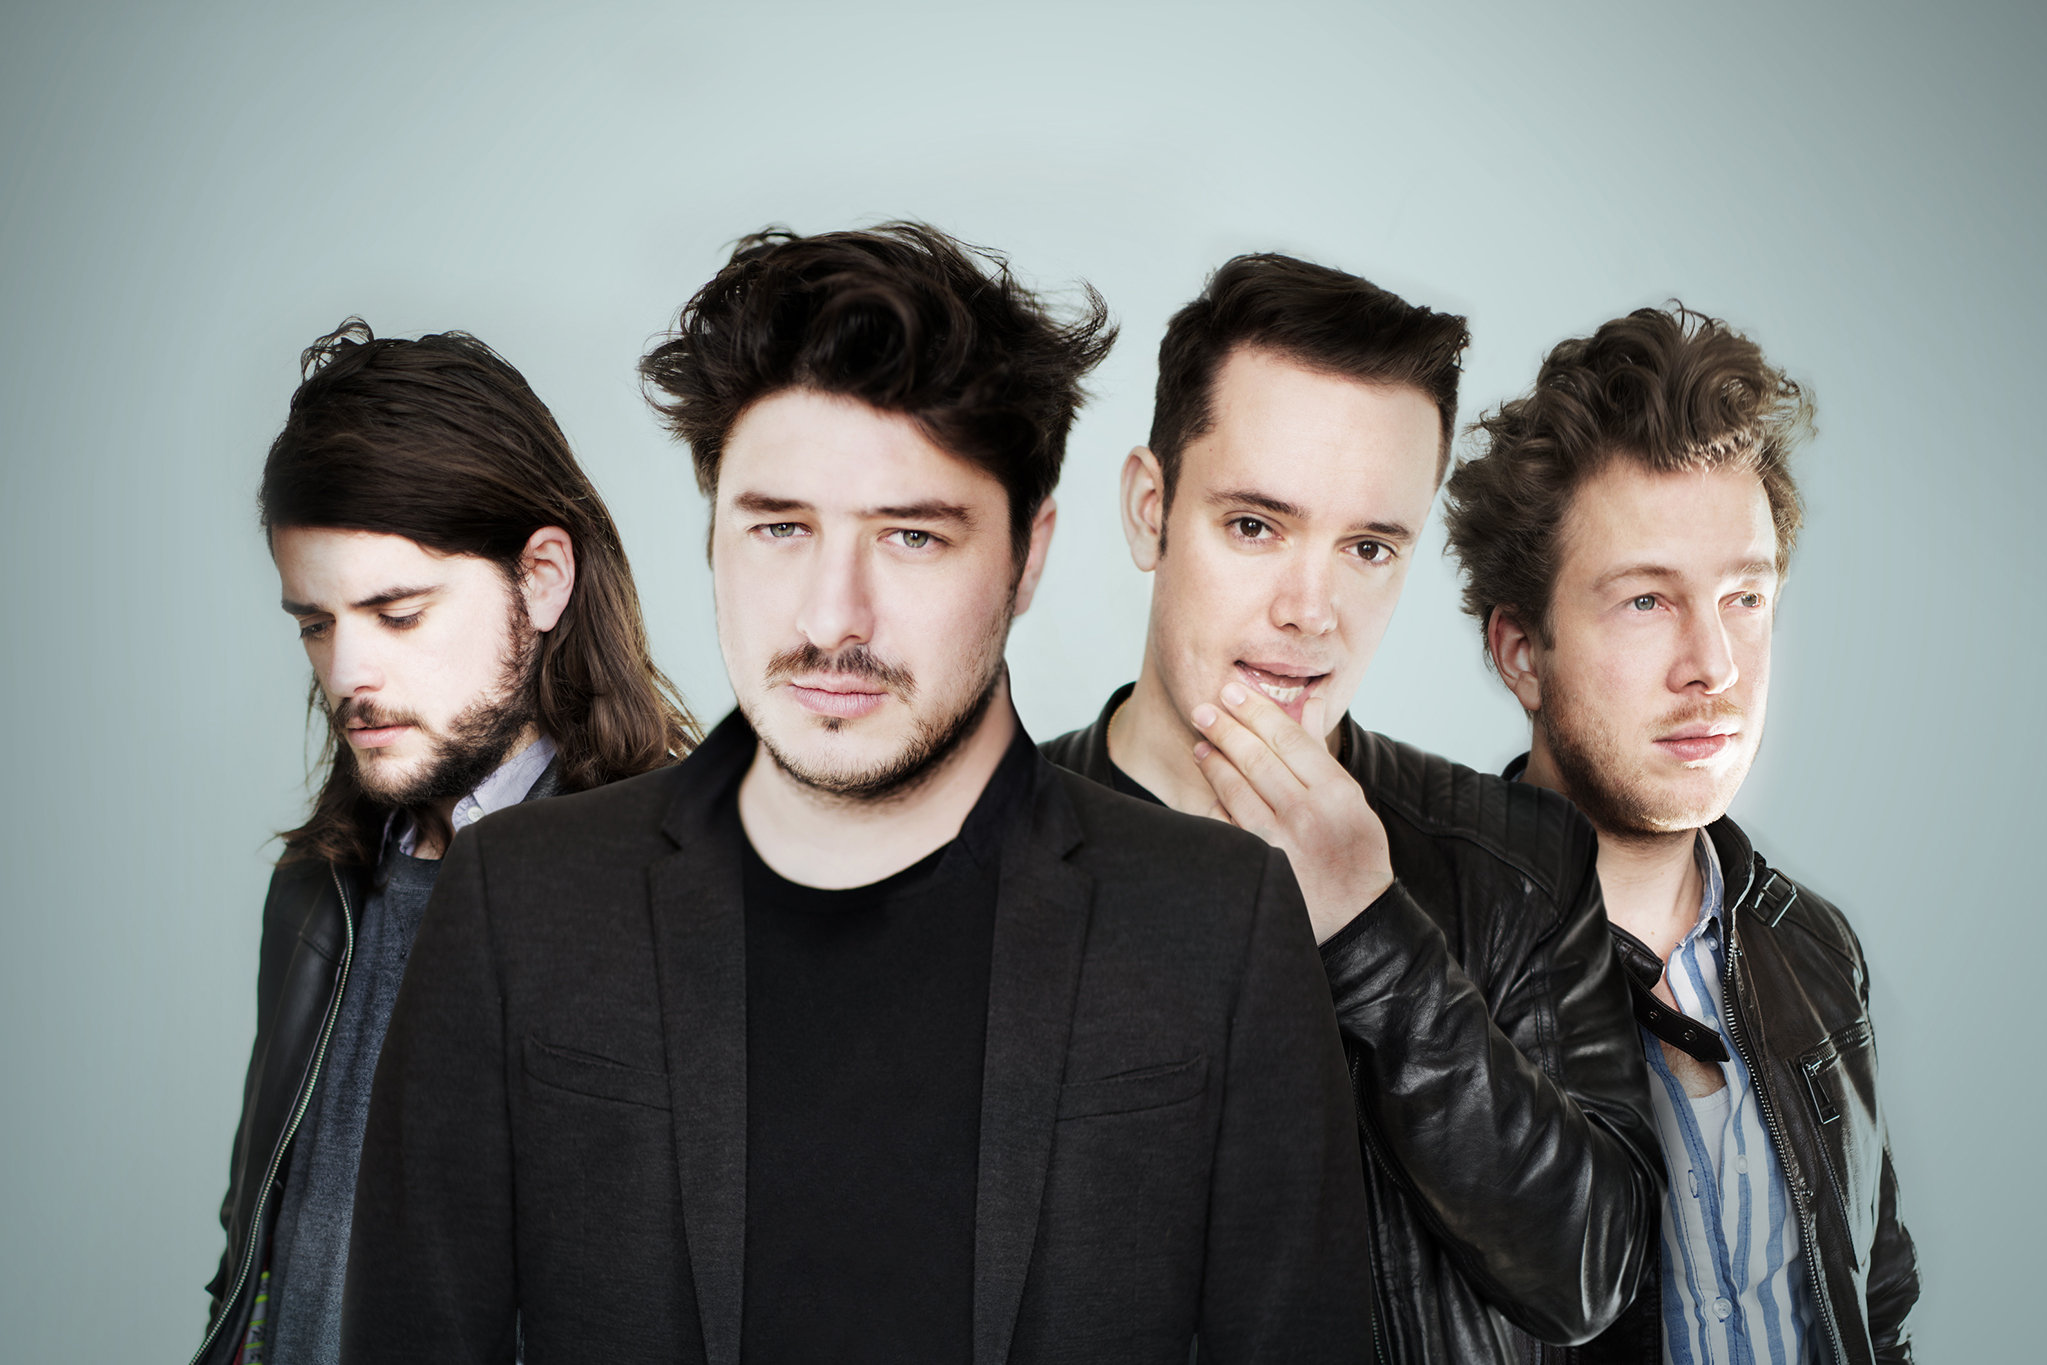 Mumford & sons most popular song